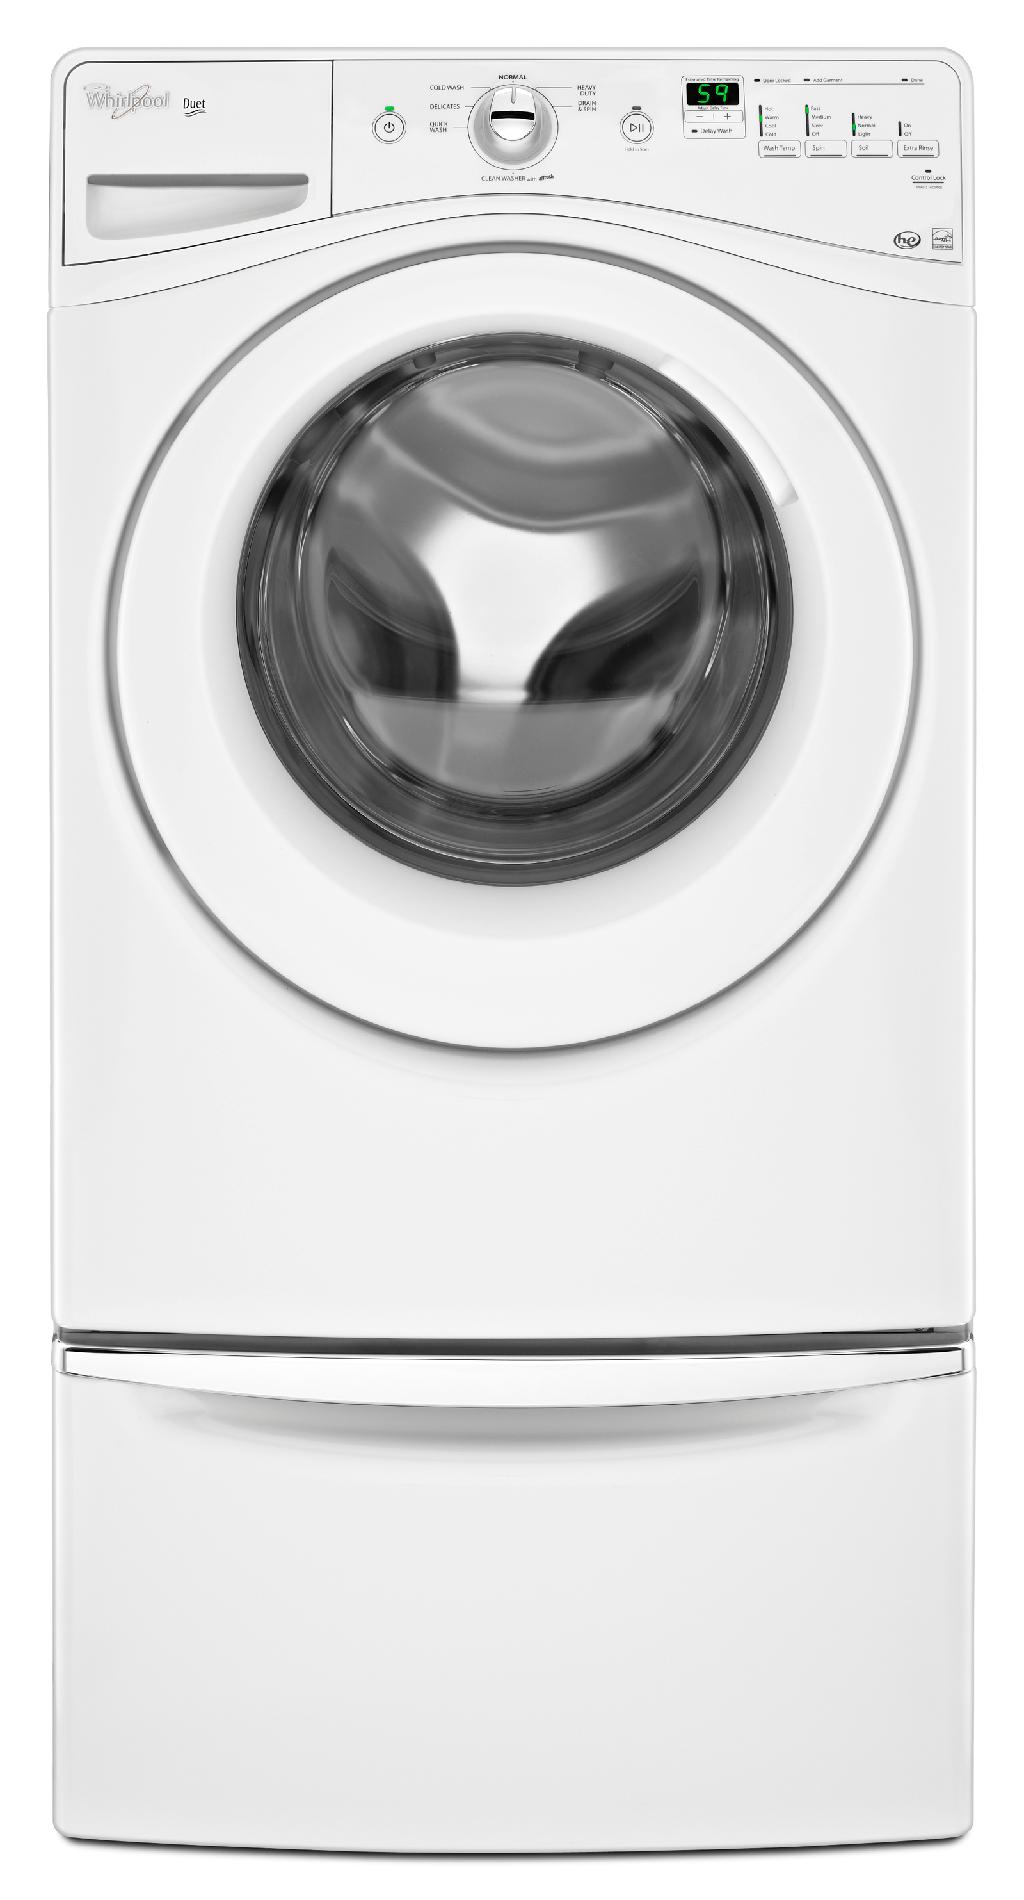 Whirlpool 4.1 cu. ft. Front-load Washer w/ Stainless Steel Basket - White